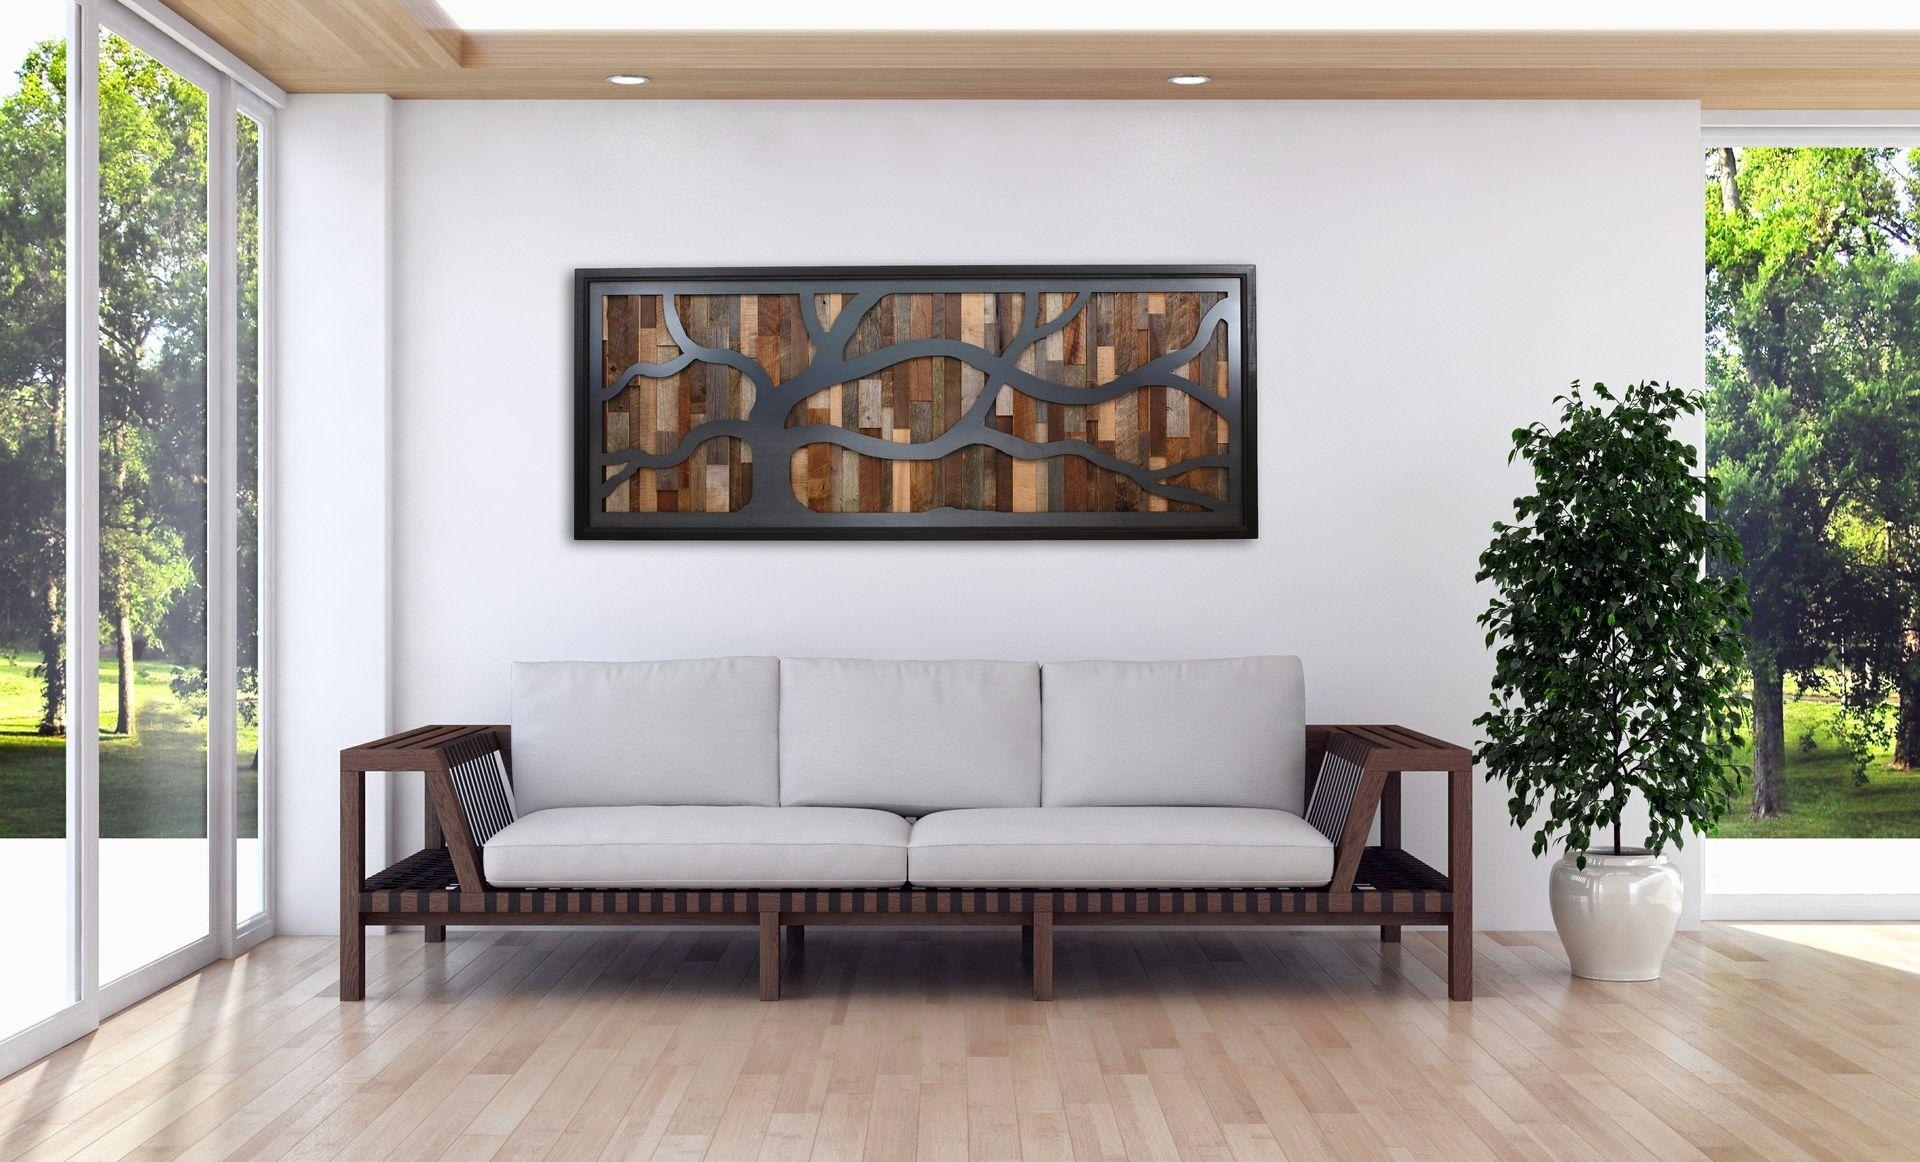 Hand Made Reclaimed Wood Wall Art Made Of Old Barnwood And Natural Throughout Natural Wood Wall Art (Image 9 of 20)